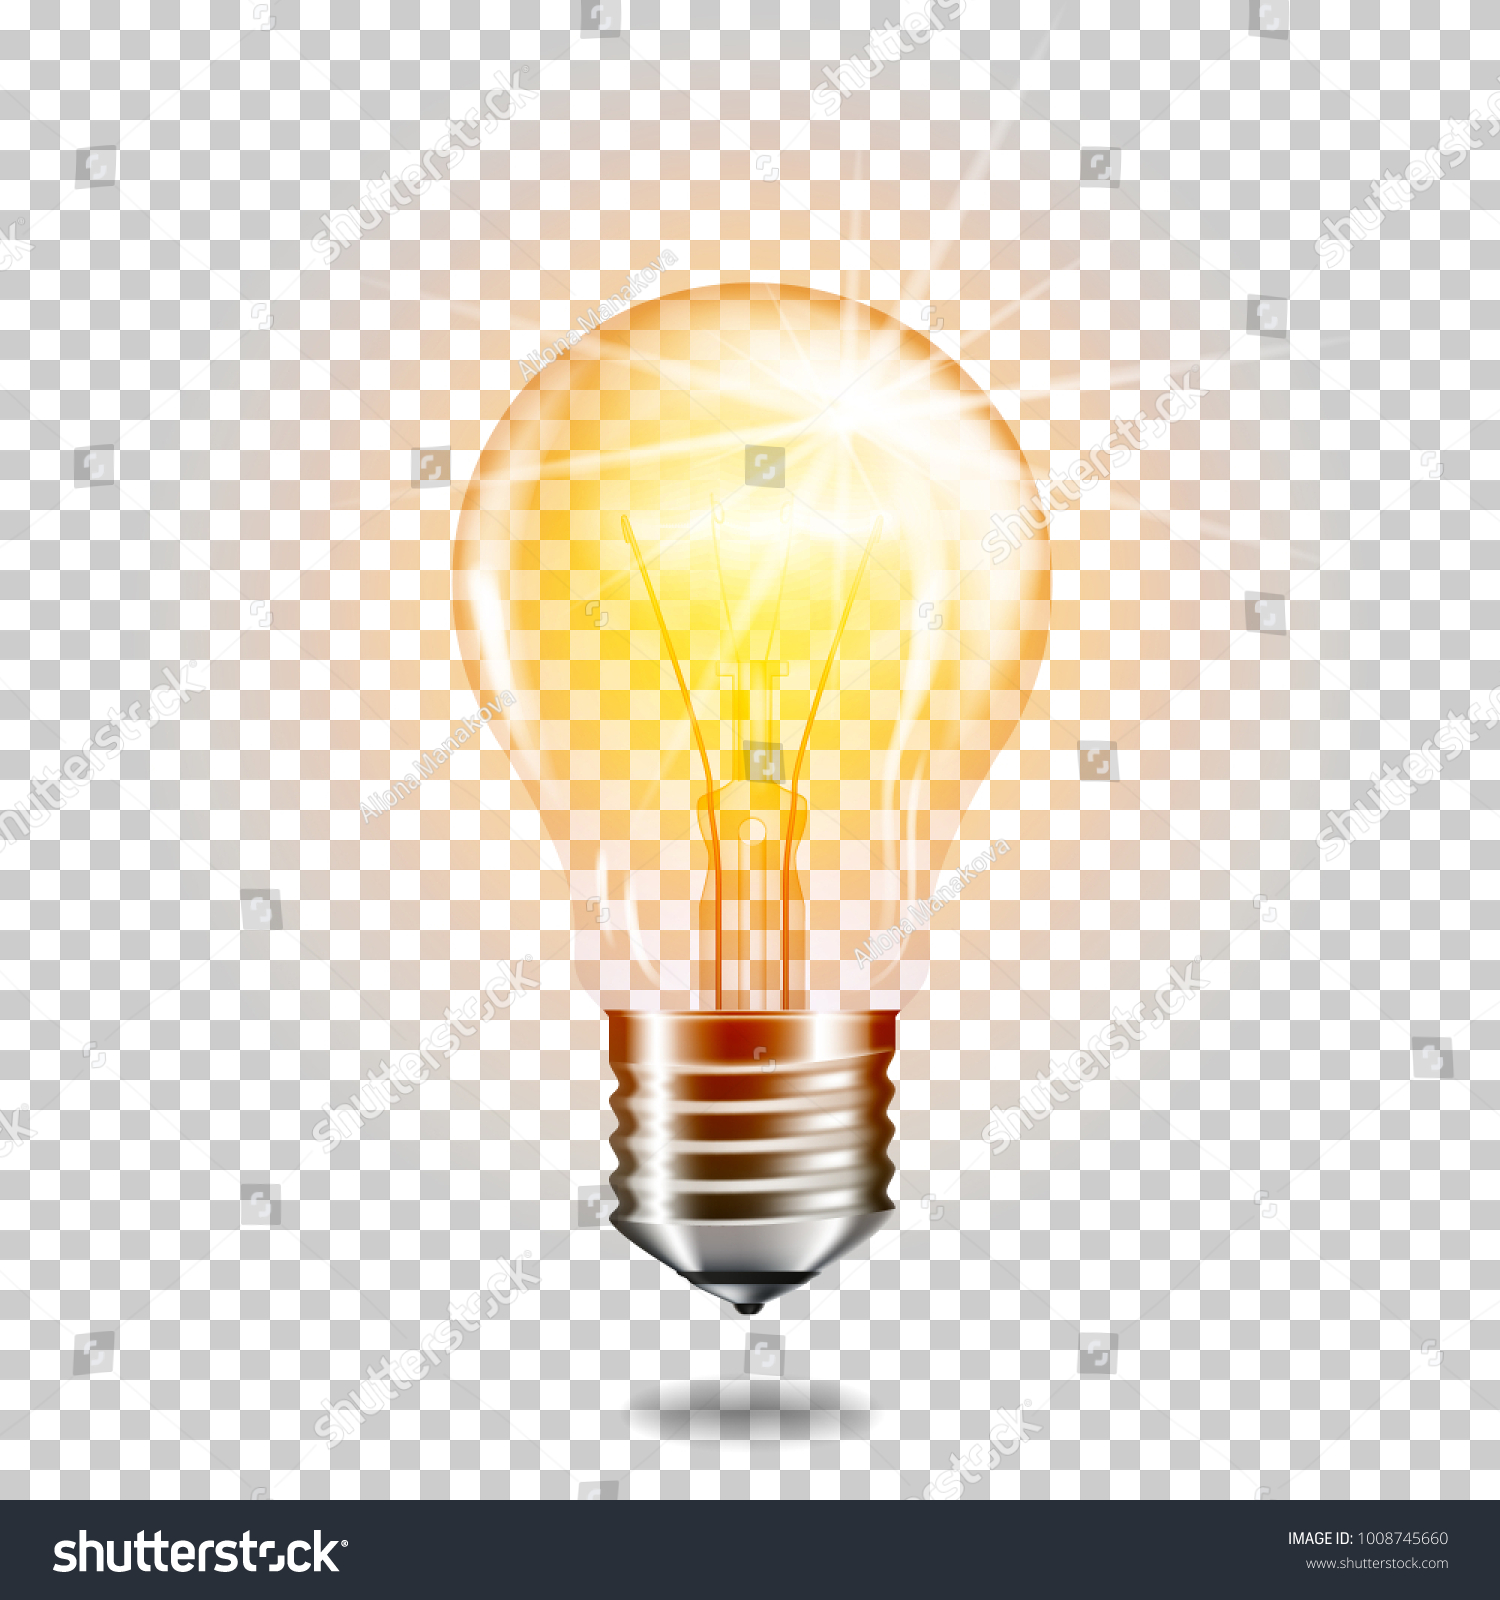 Transparent realistic glowing light bulb, isolated. #1008745660